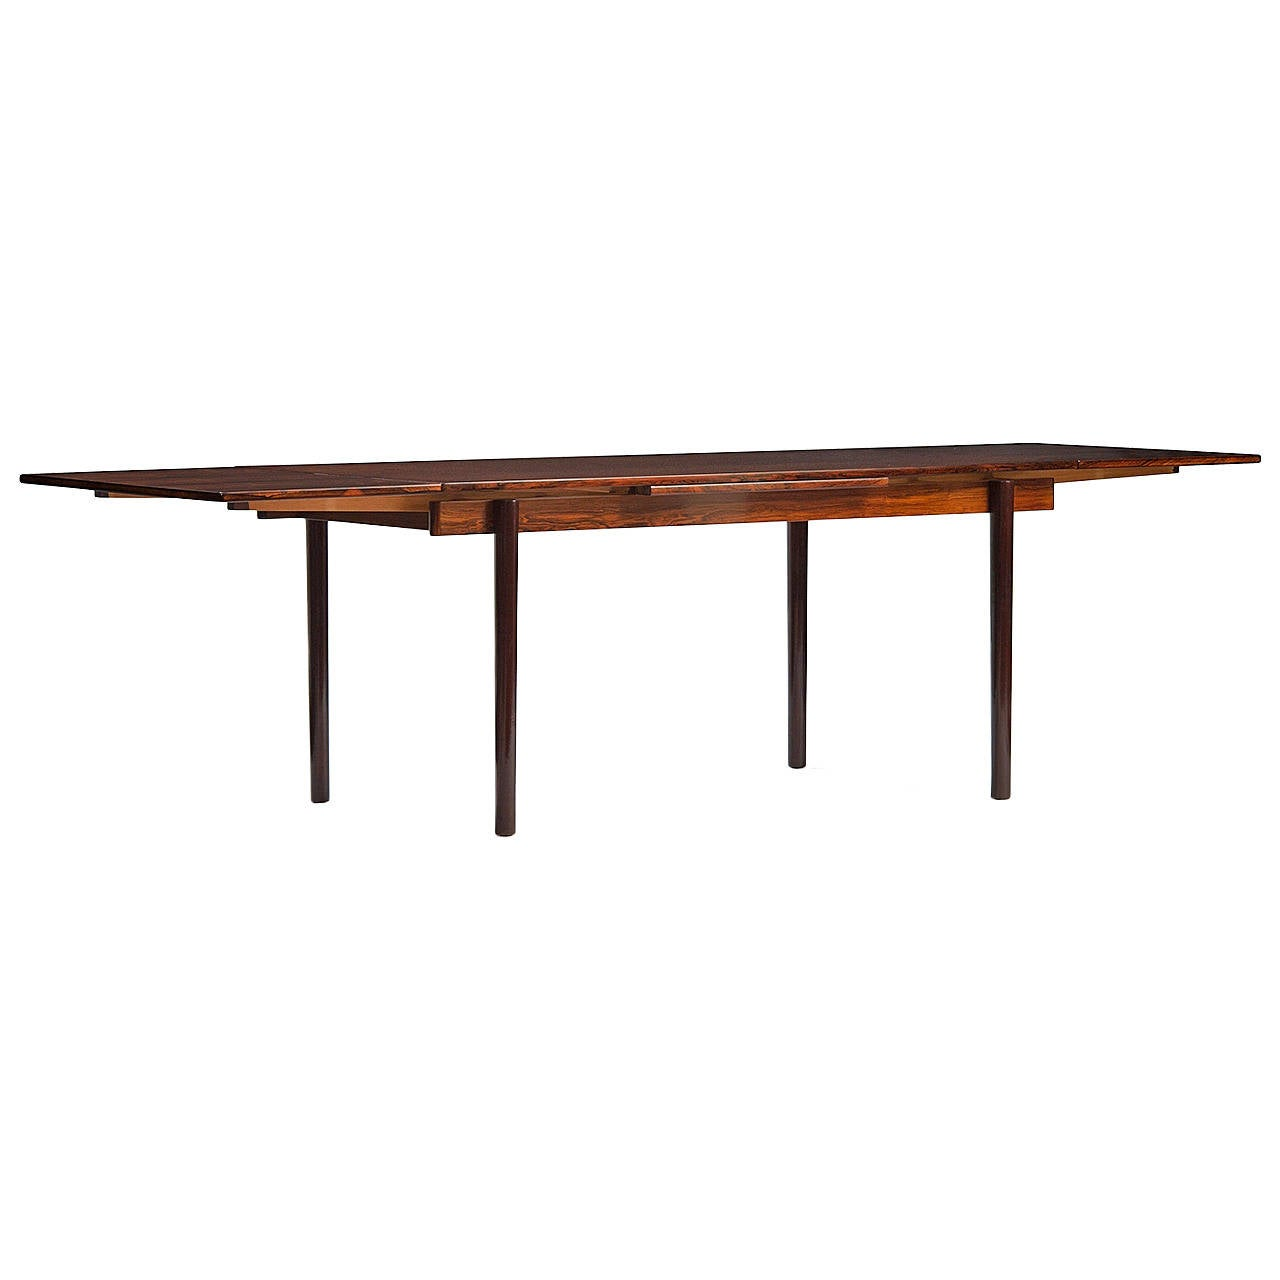 Danish dining table at 1stdibs for Table design guidelines